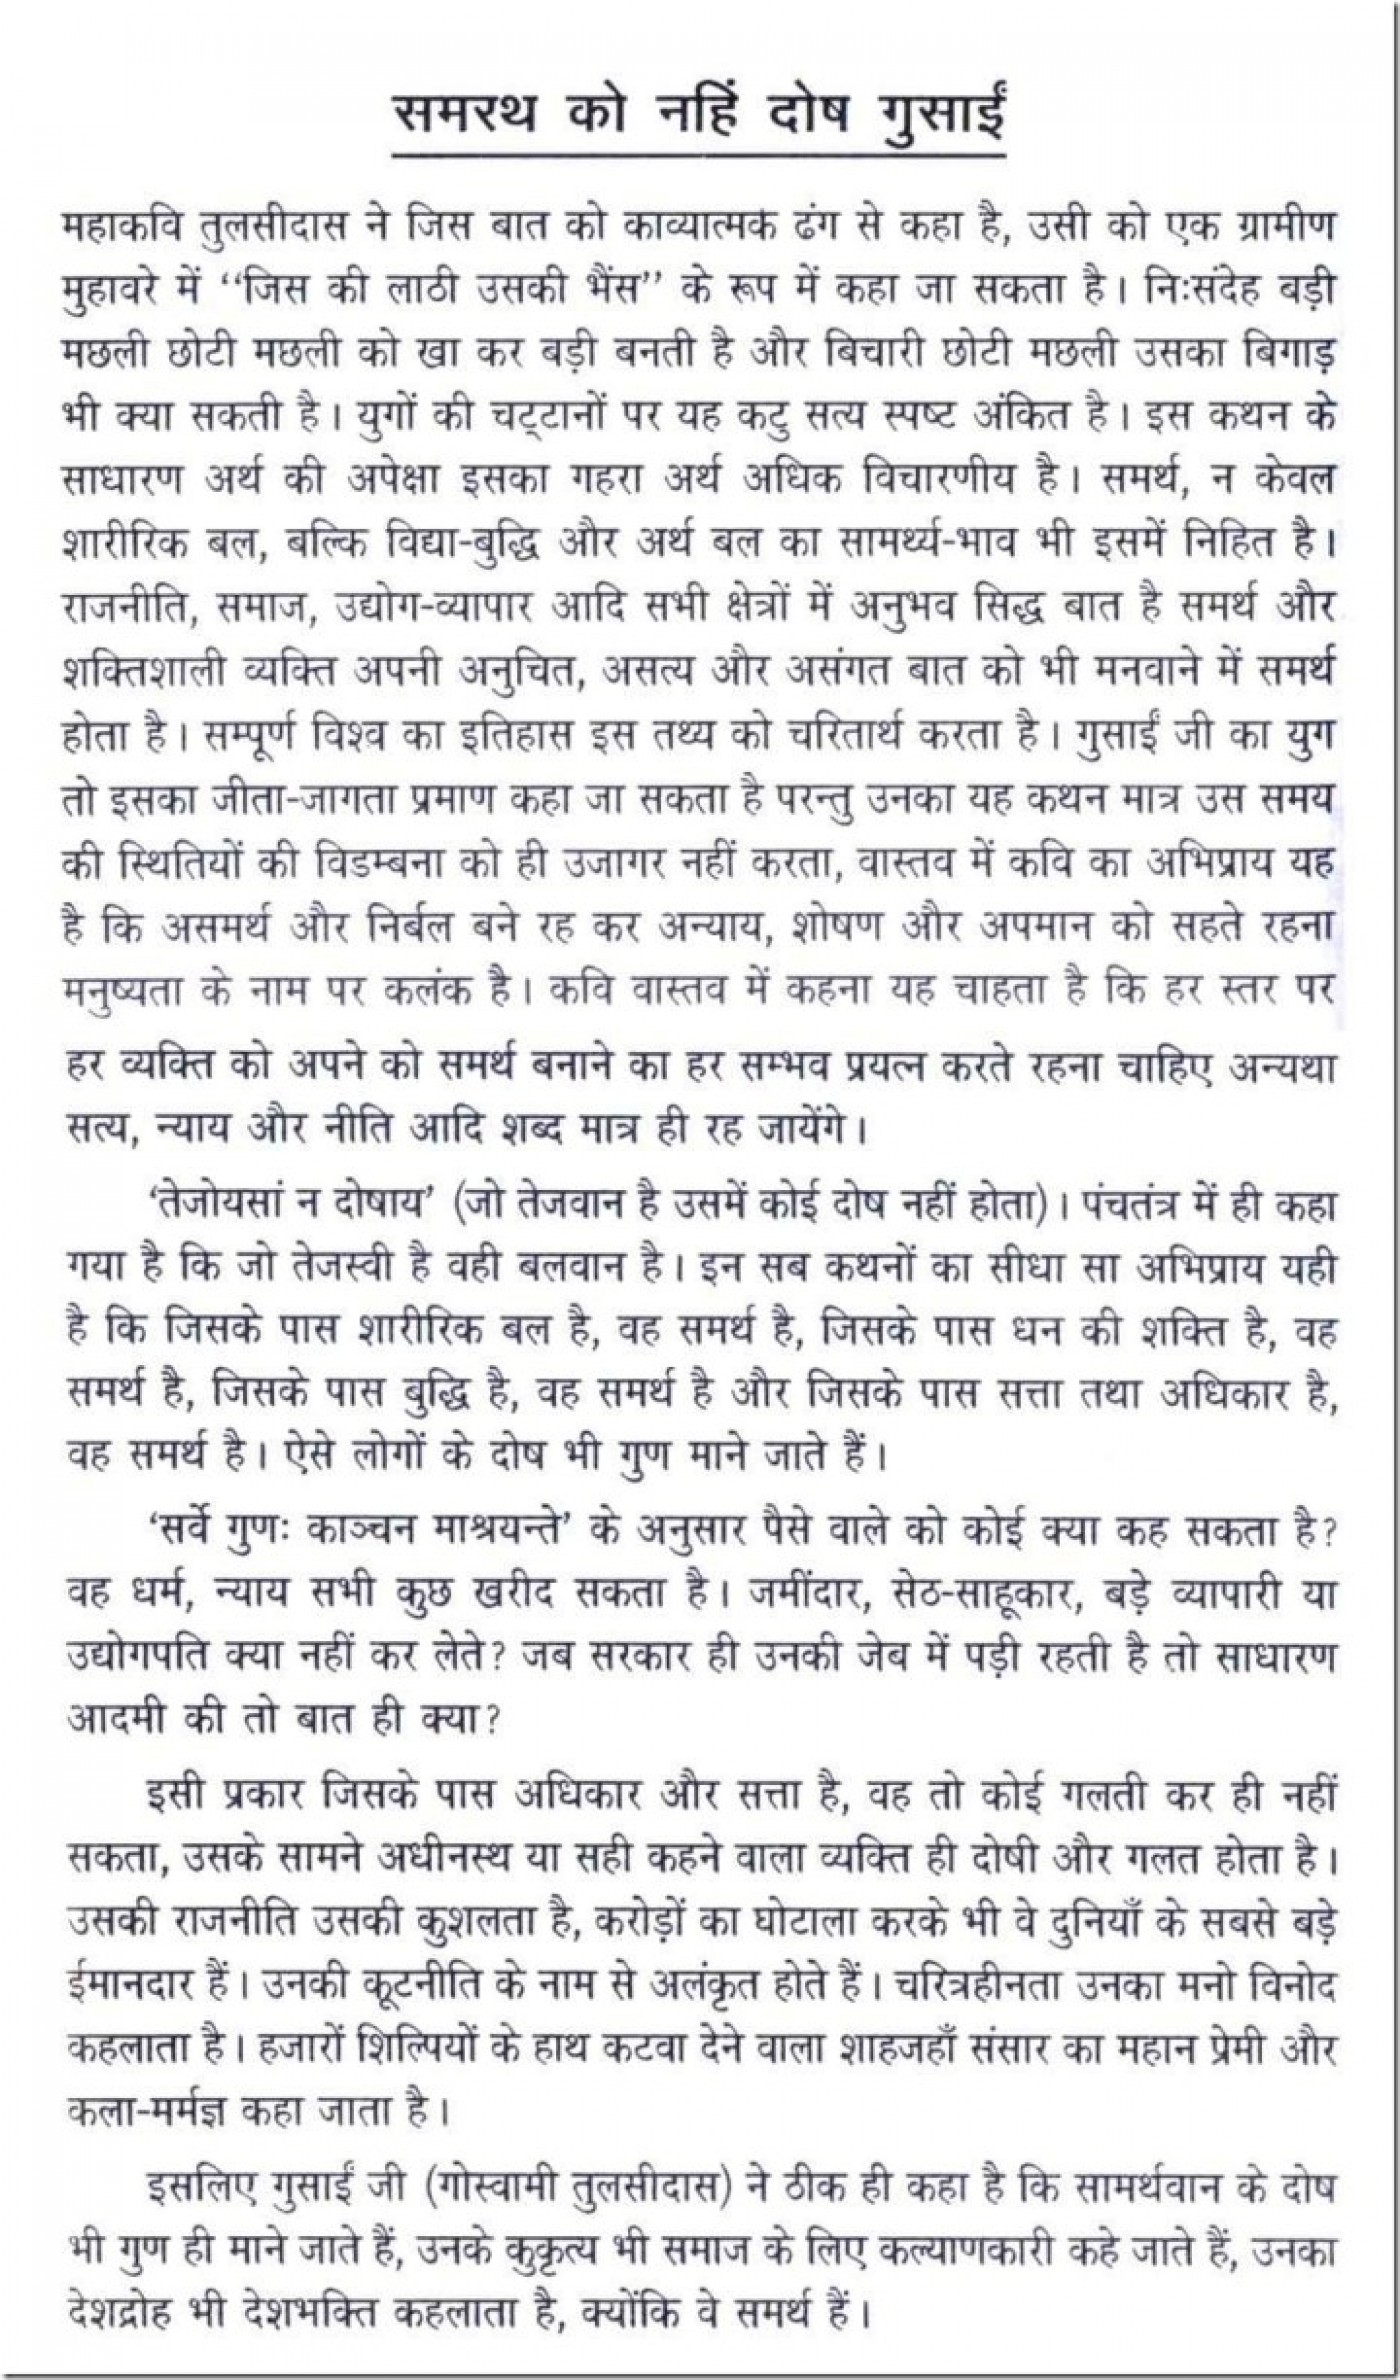 007 Good Habits Essay In Hindi Example Hh0055 Thumbresize7202c1224 Exceptional Reading Habit Wikipedia 1400